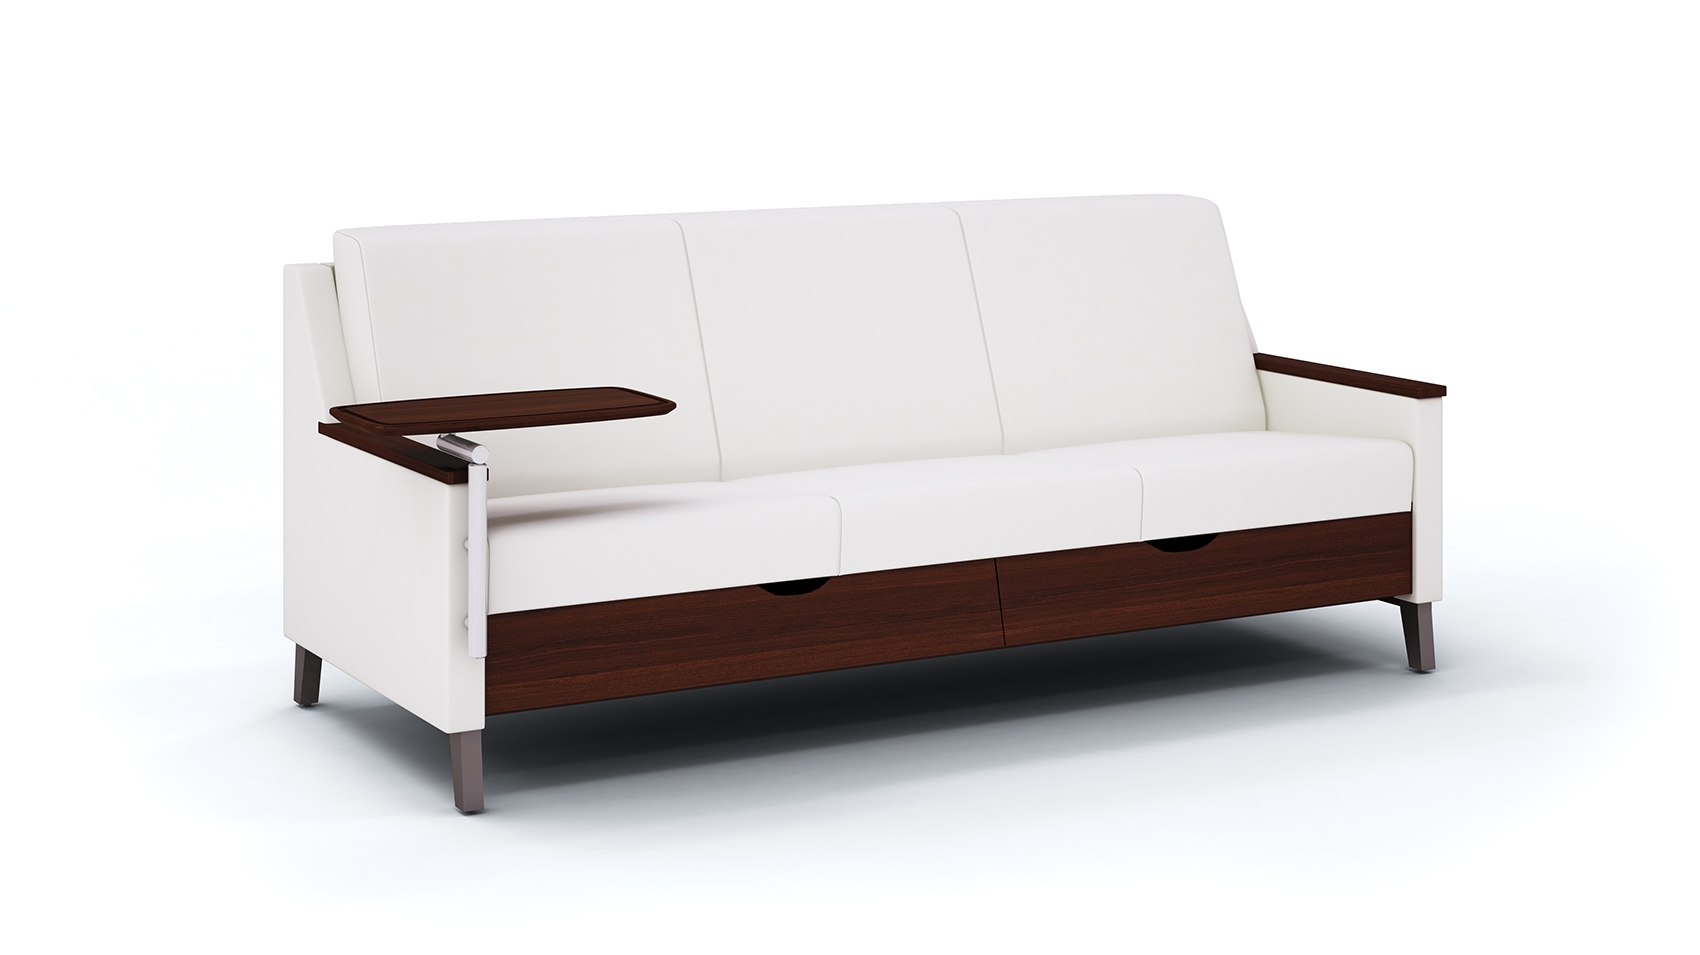 Attirant Reverie Is A Sleepover Sofa For Healthcare Spaces That Offers Supreme Form  And Function. Thoughtfully Designed With Multiple Arm Styles, ...